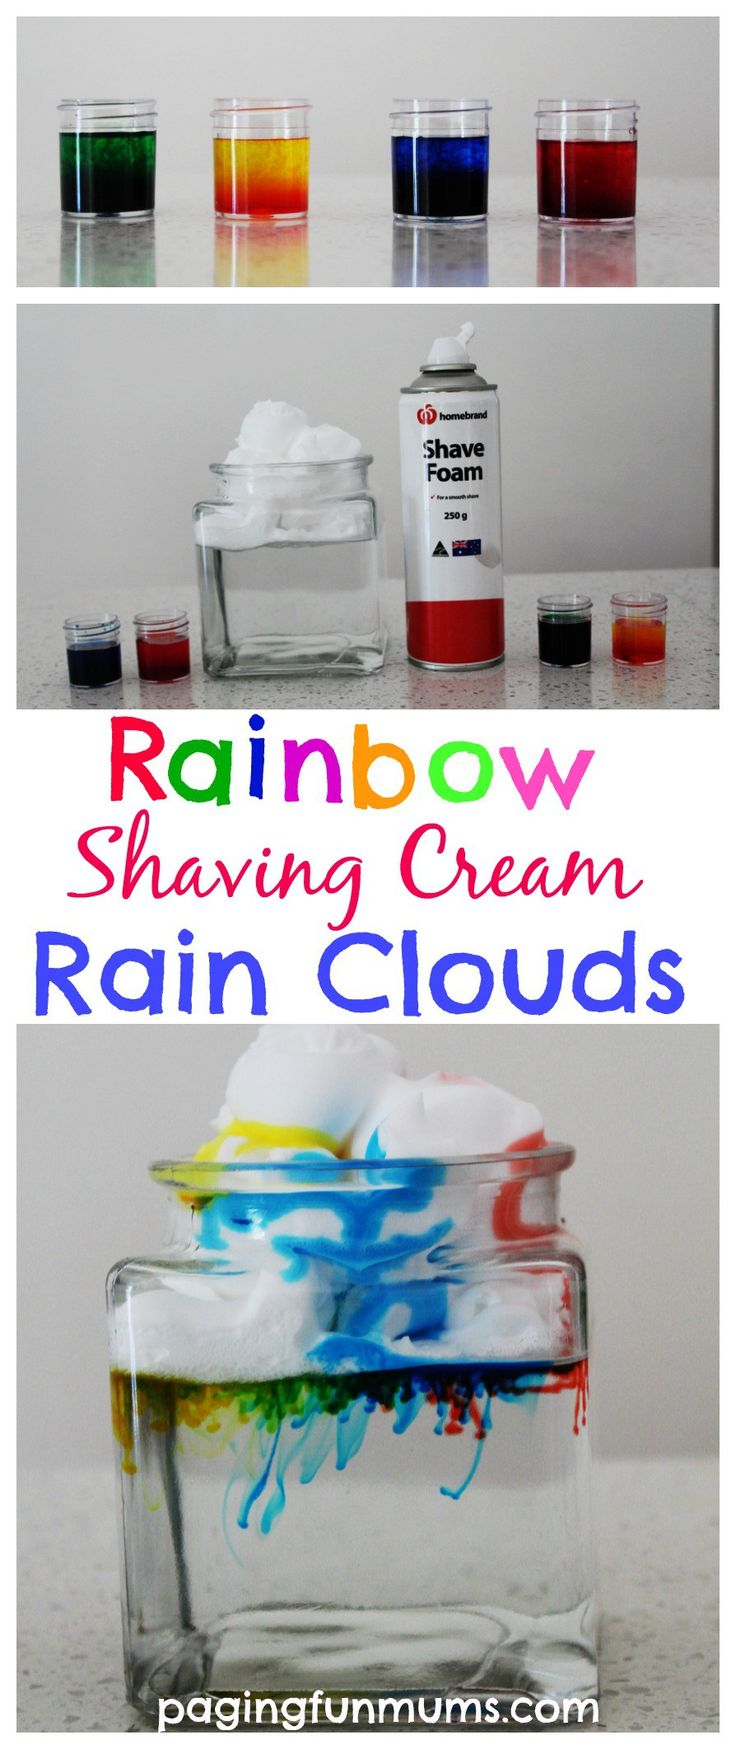 rainbow science project How to stack liquids in a rainbow of layers: a fun kid science project by steve spangler published january 20, 2014 thx u got me an a+ on my science fair project.